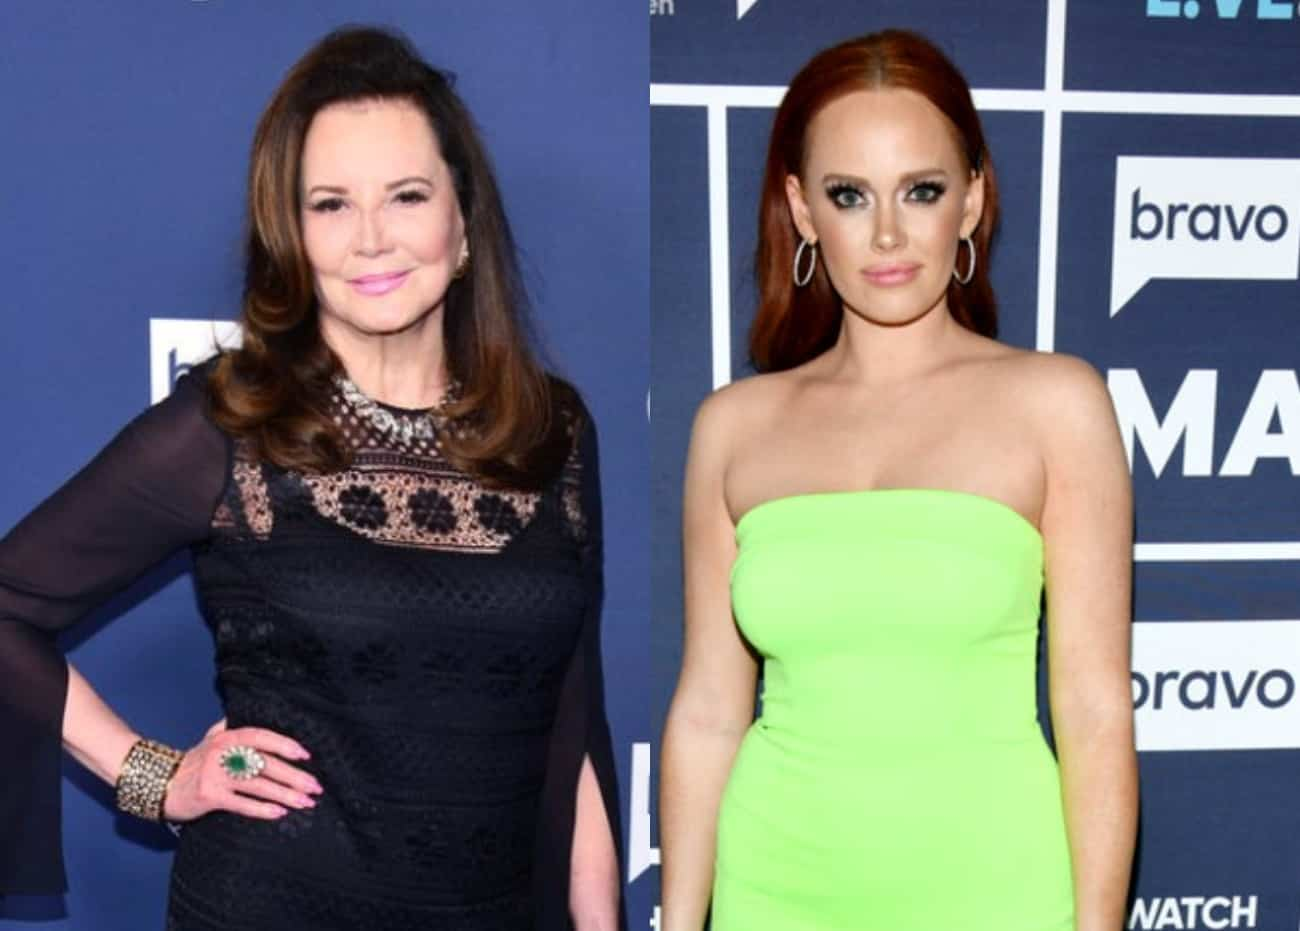 Southern Charm's Patricia Altschul Seemingly Suggests Kathryn Dennis Does Drugs and Sleeps With Partner's Friends, See the Shocking IG Comment